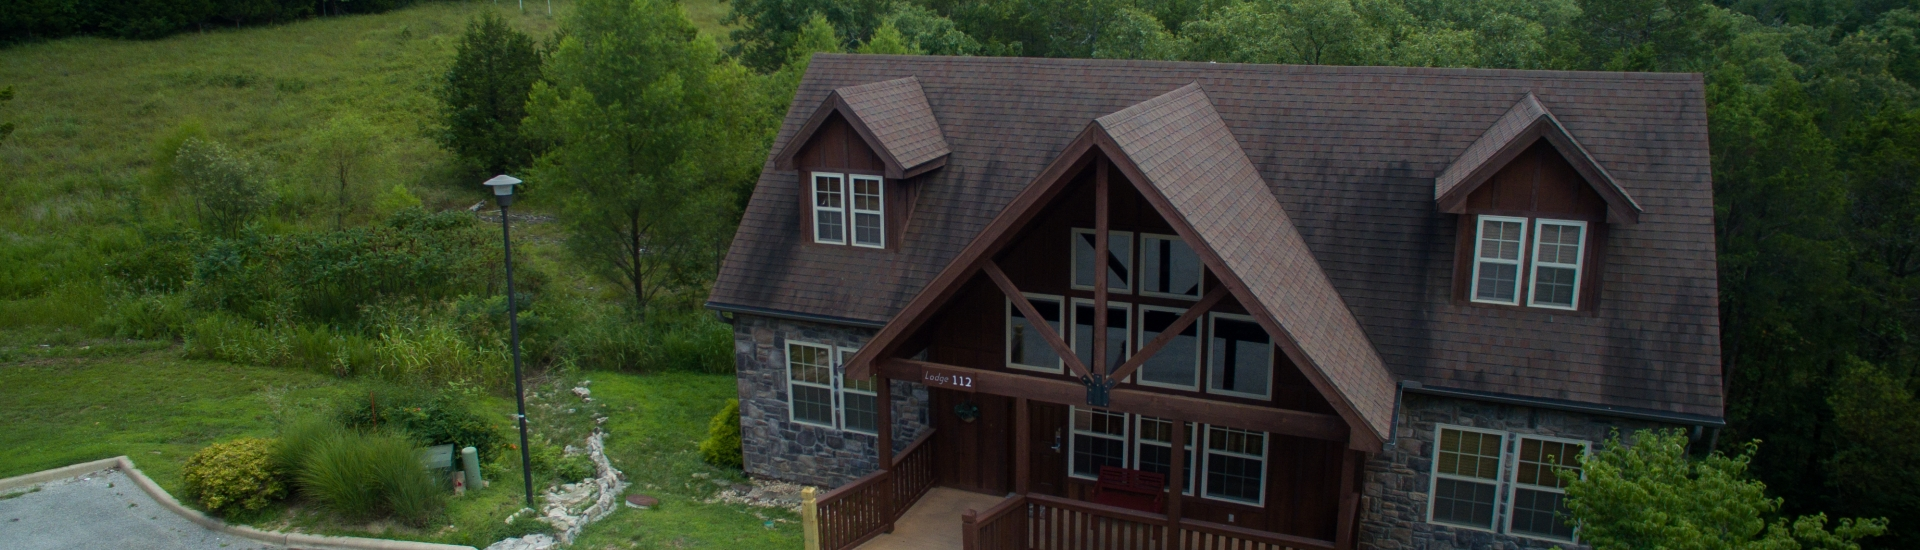 4 bedroom cabins in branson call 1 800 504 0115